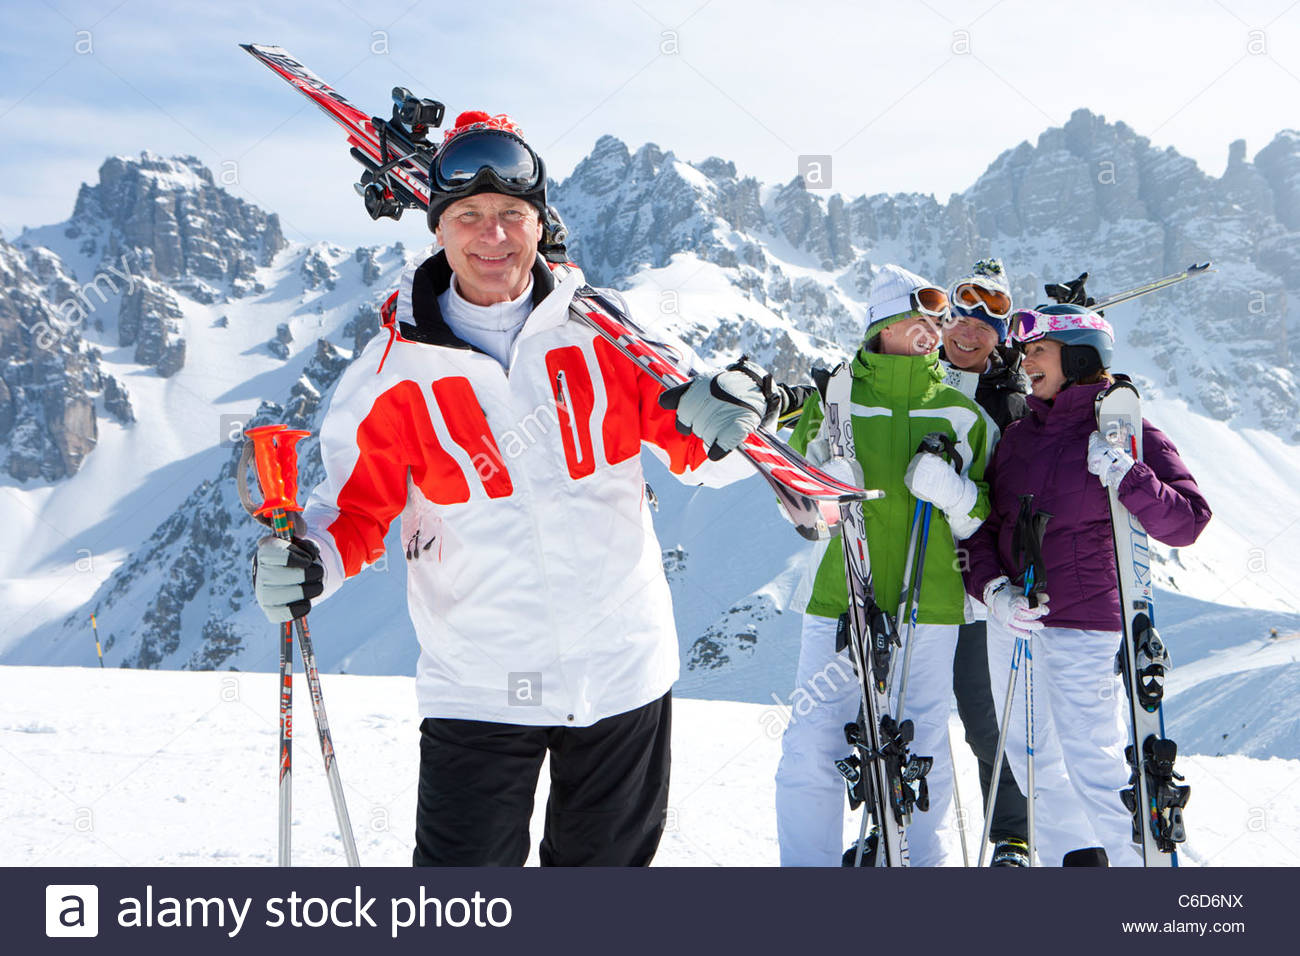 snow-skiing-couples-pictures